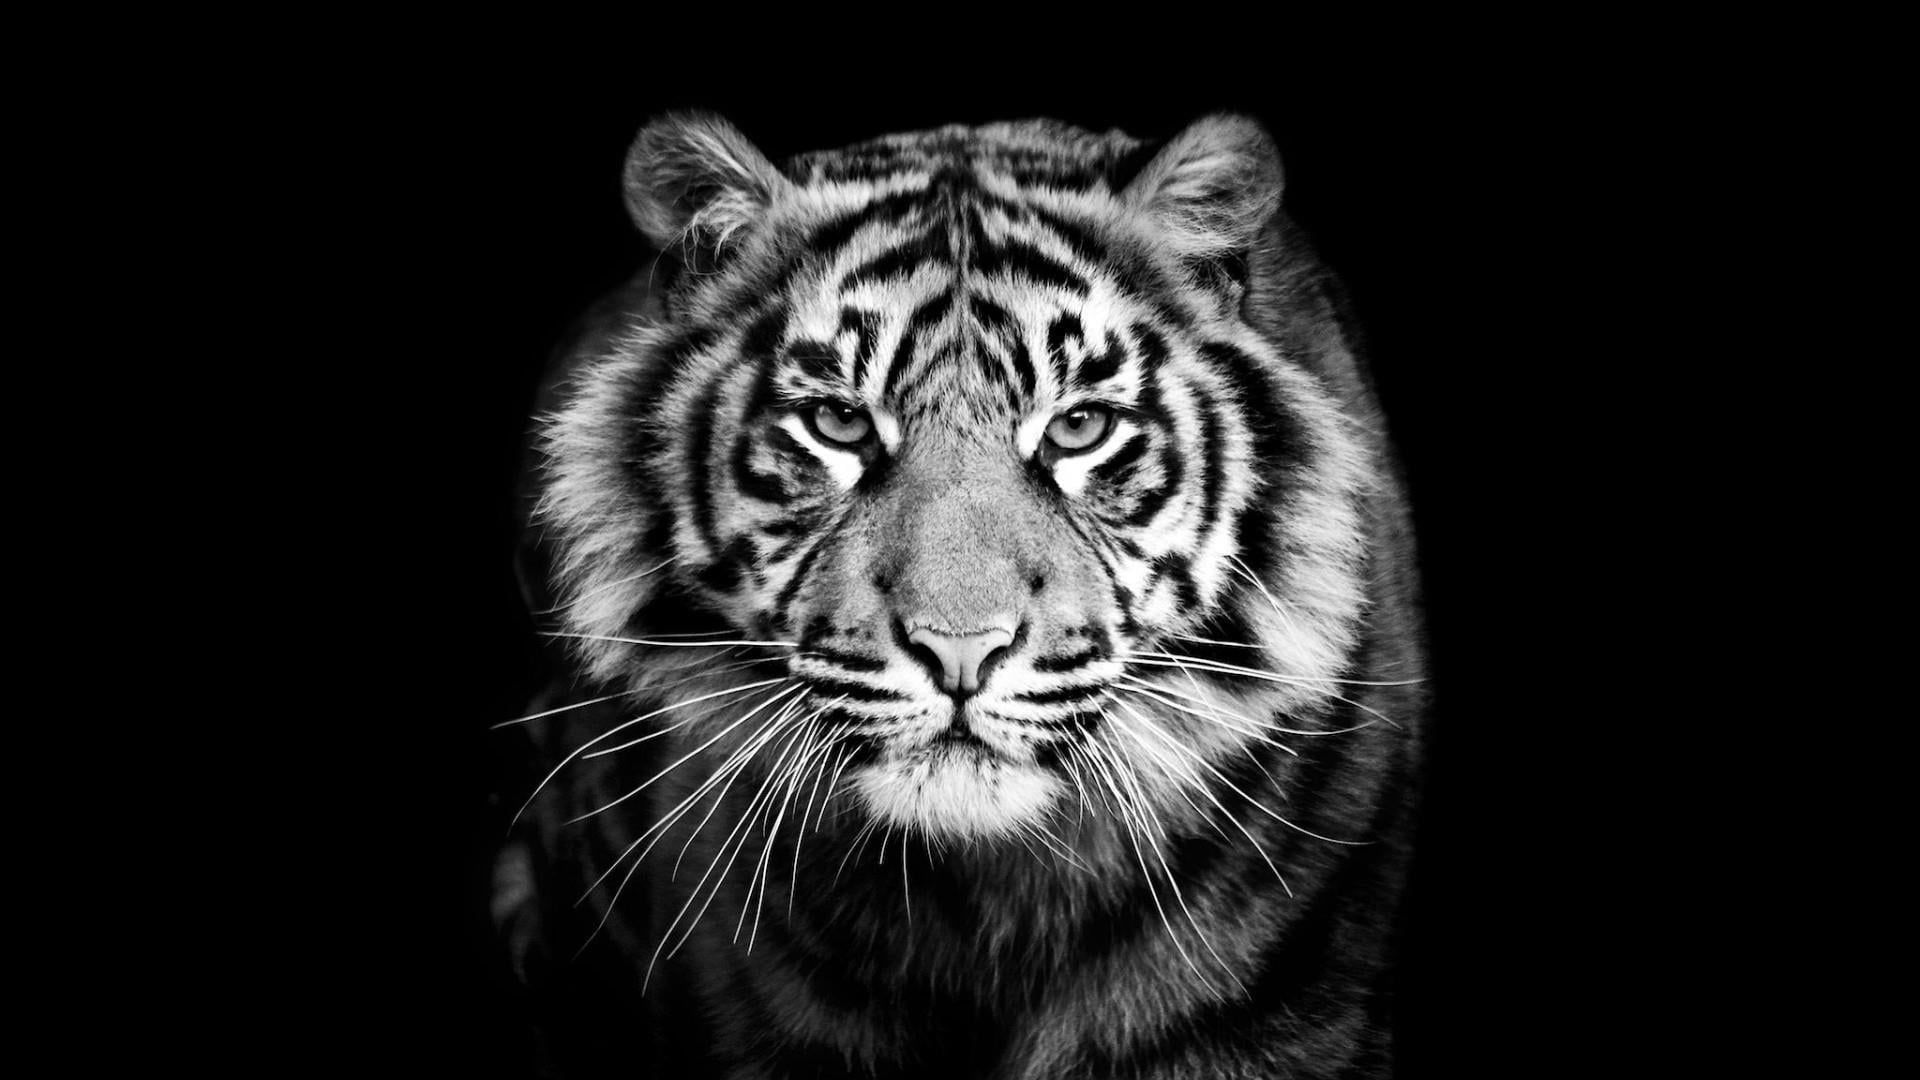 Tiger Black Black And White Wildlife Monochrome Photography Head Big Cats Monochrome Close Up 1080p Wallpaper Hdwal Tiger Images Sumatran Tiger Animals